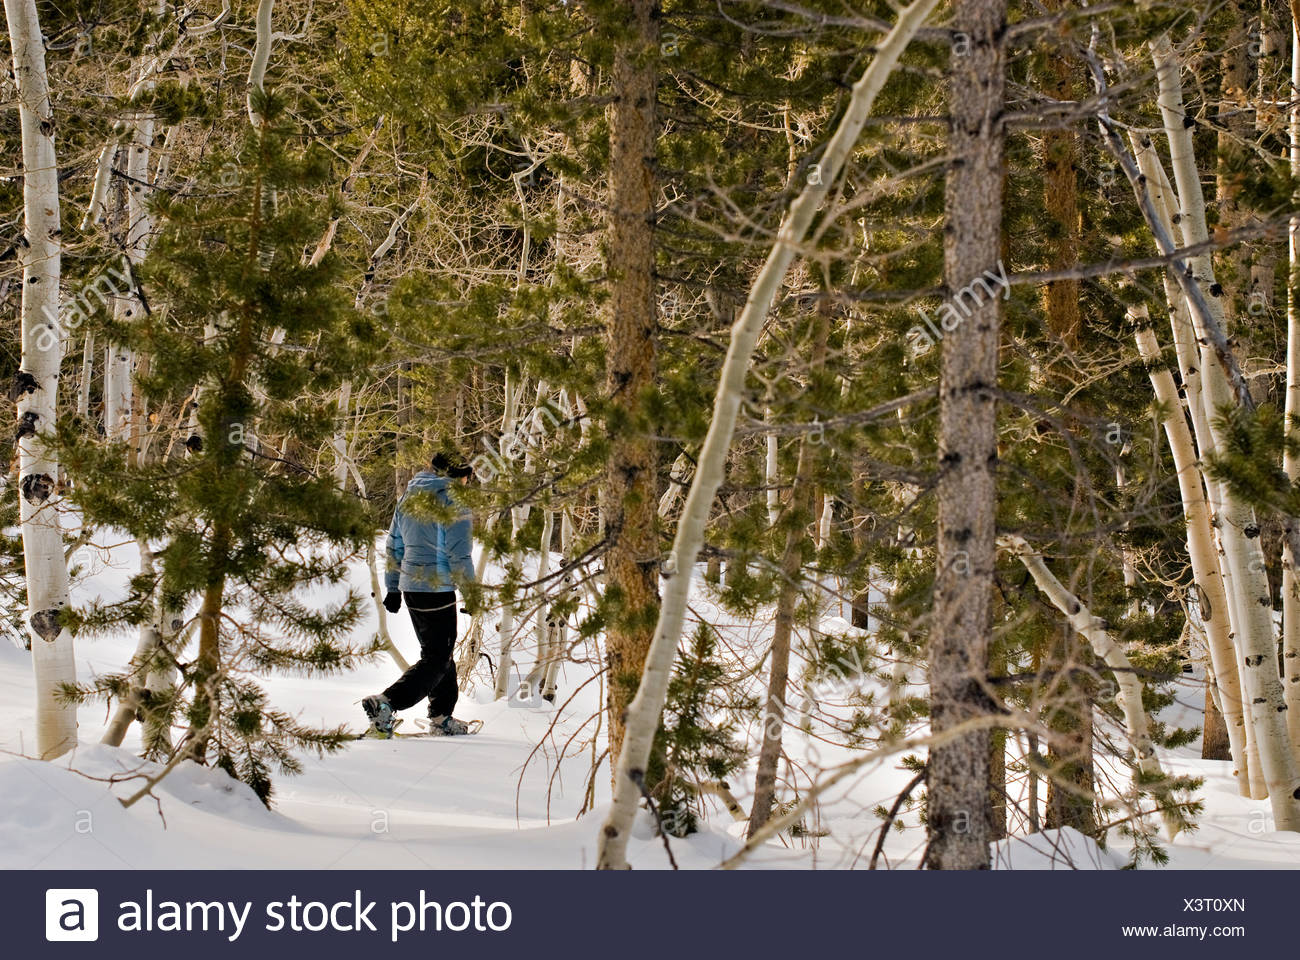 A young woman snowshoes through fresh powder near North Lake, Bishop, CA. - Stock Image